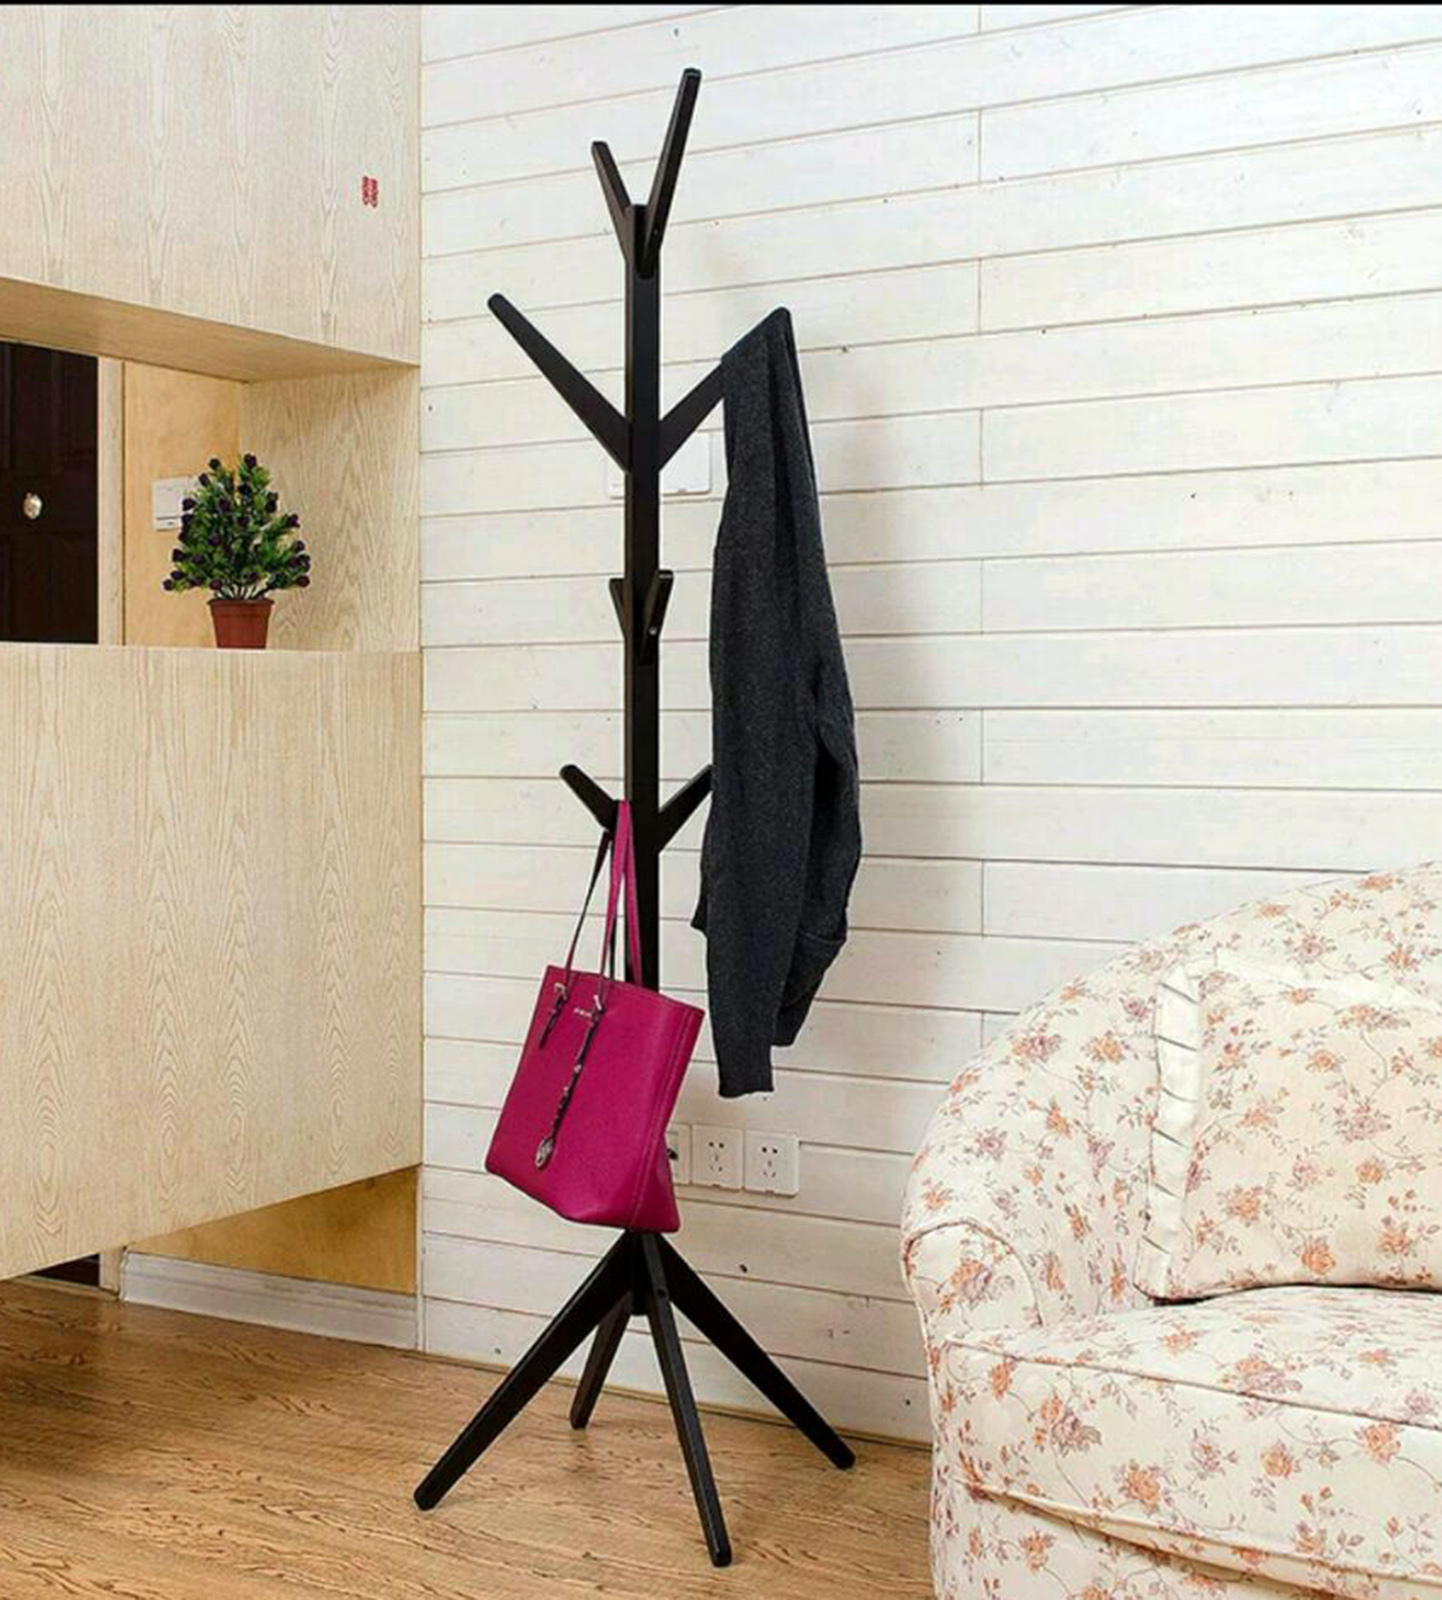 Coat hanger B8 brown a.jpg